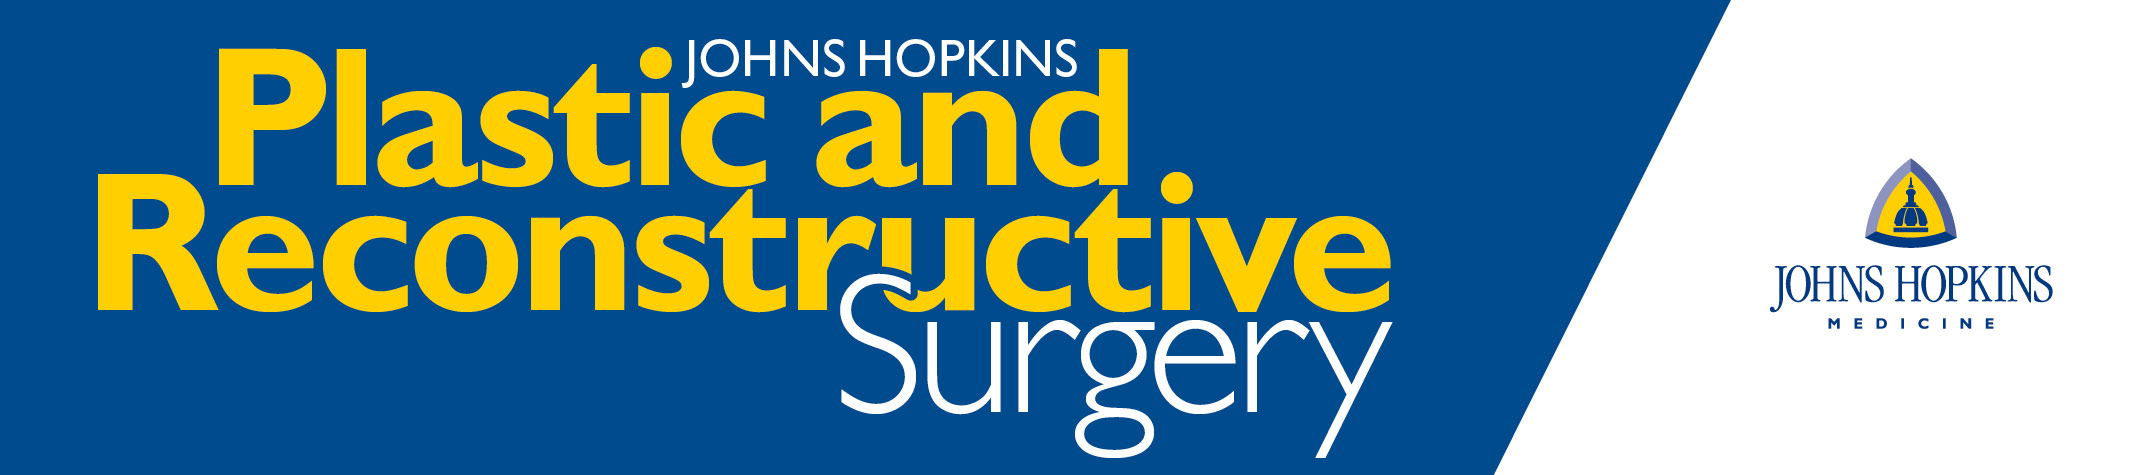 Johns Hopkins Department of Plastic and Reconstructive Surgery